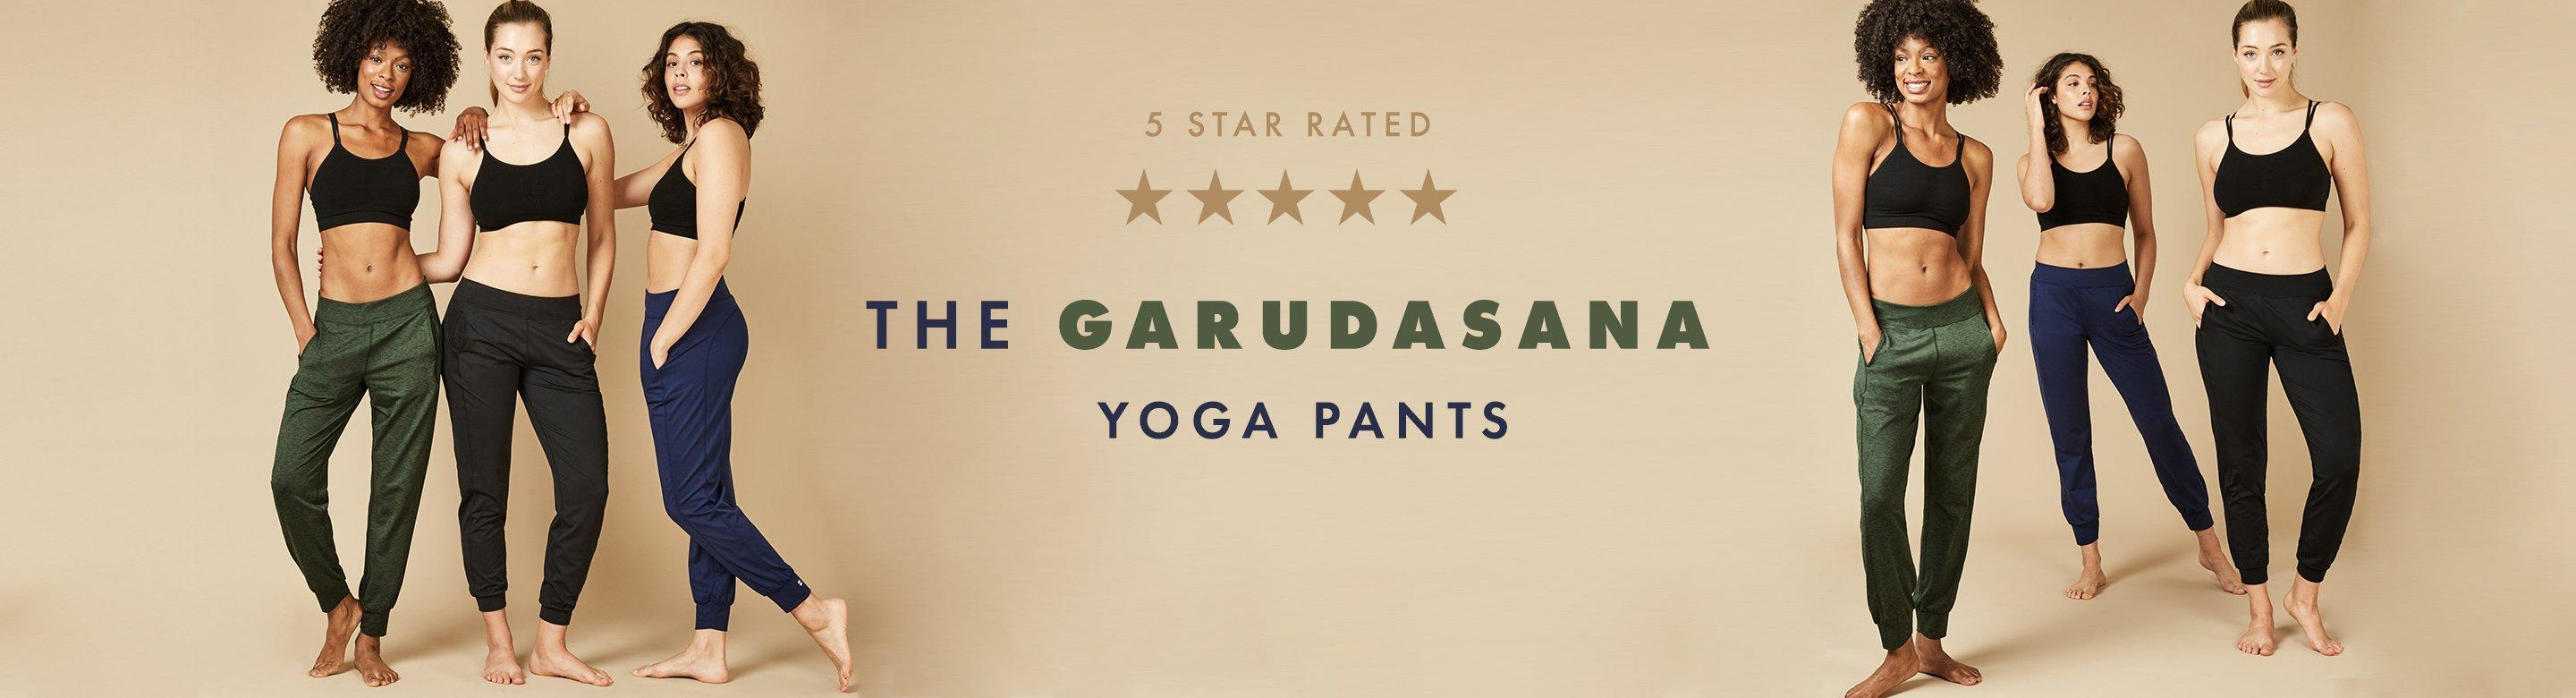 Garudasana Yoga Pants